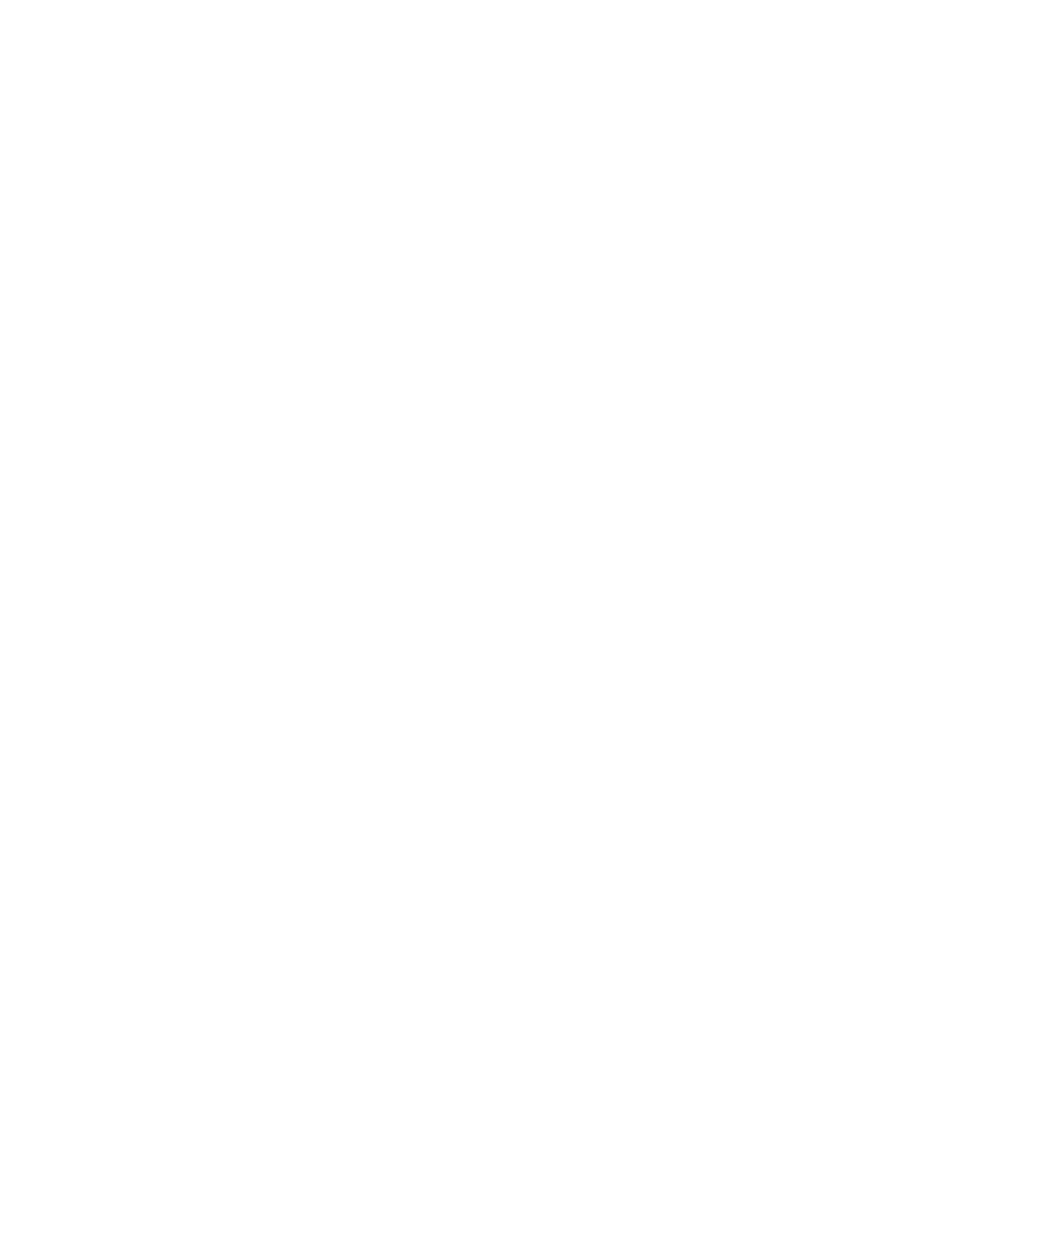 Zsidai Group logo